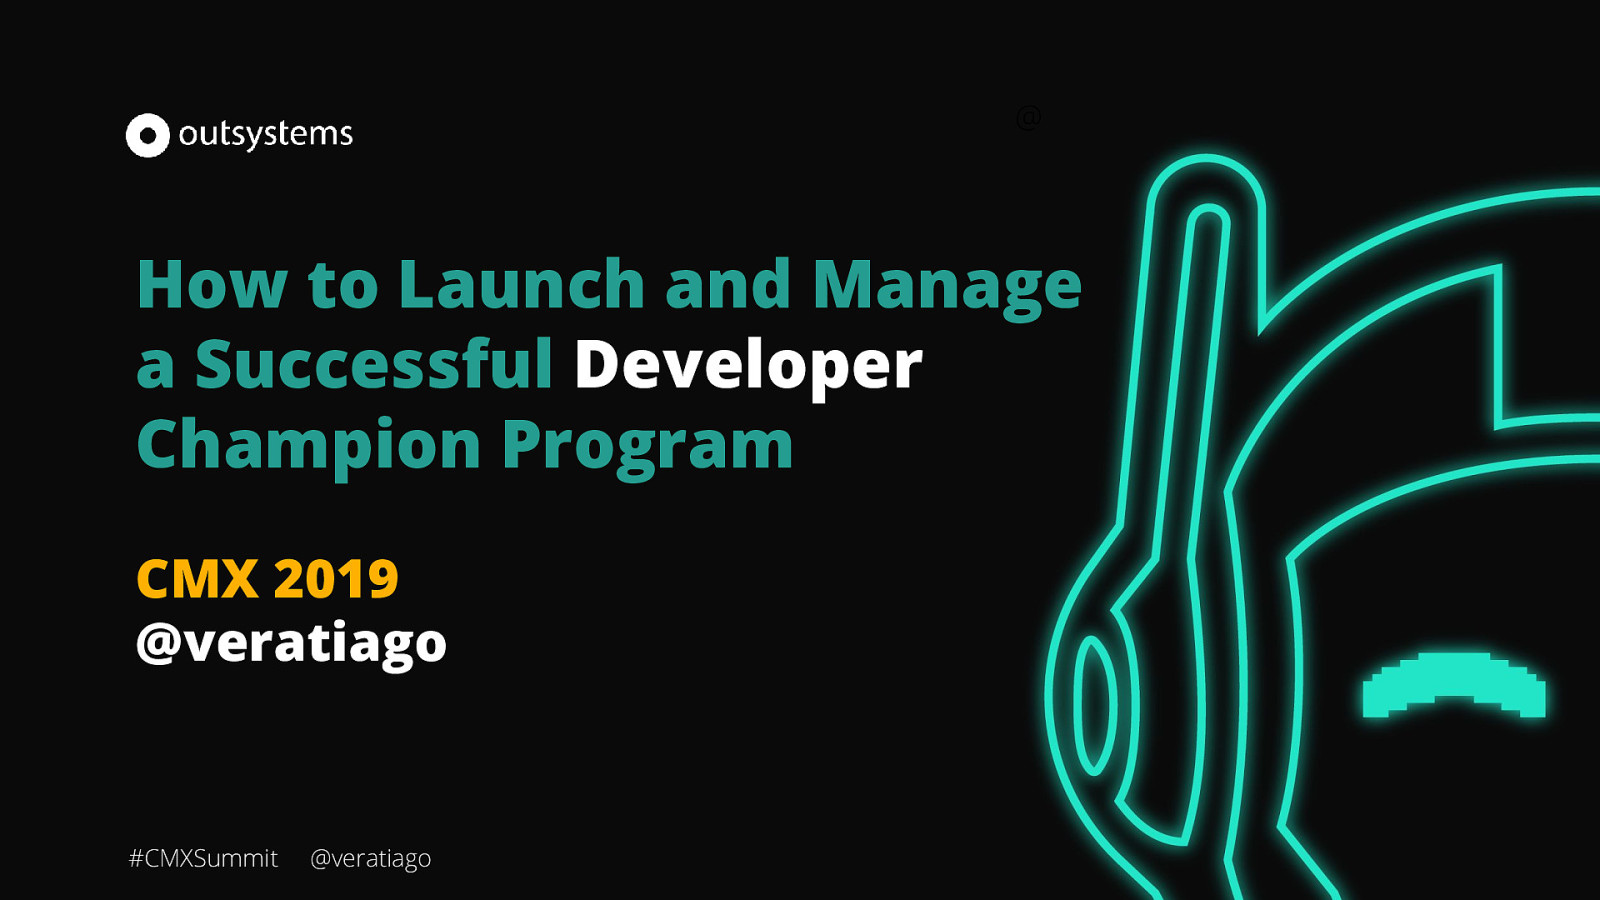 How to Launch and Manage a Successful Developer Champion Program